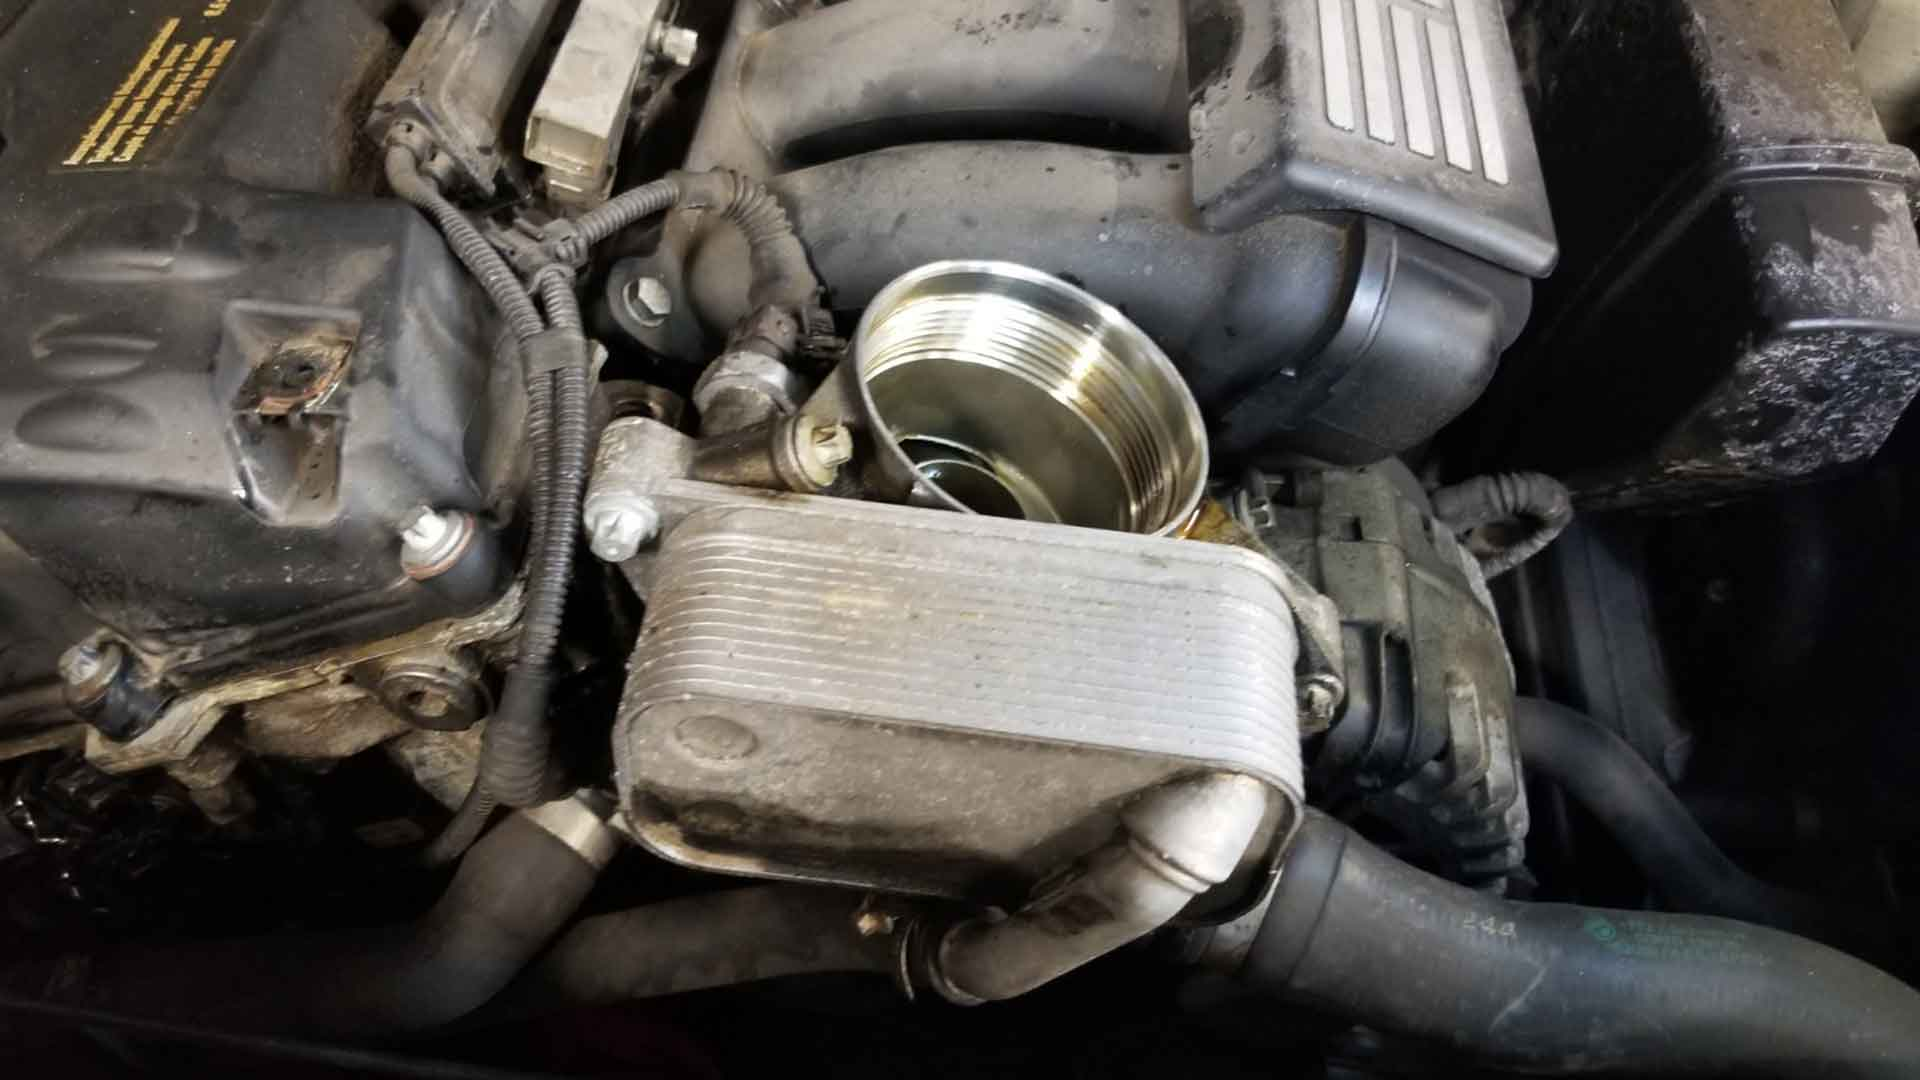 How To Fix A Leaky Oil Filter Housing On An N51, N52, N54